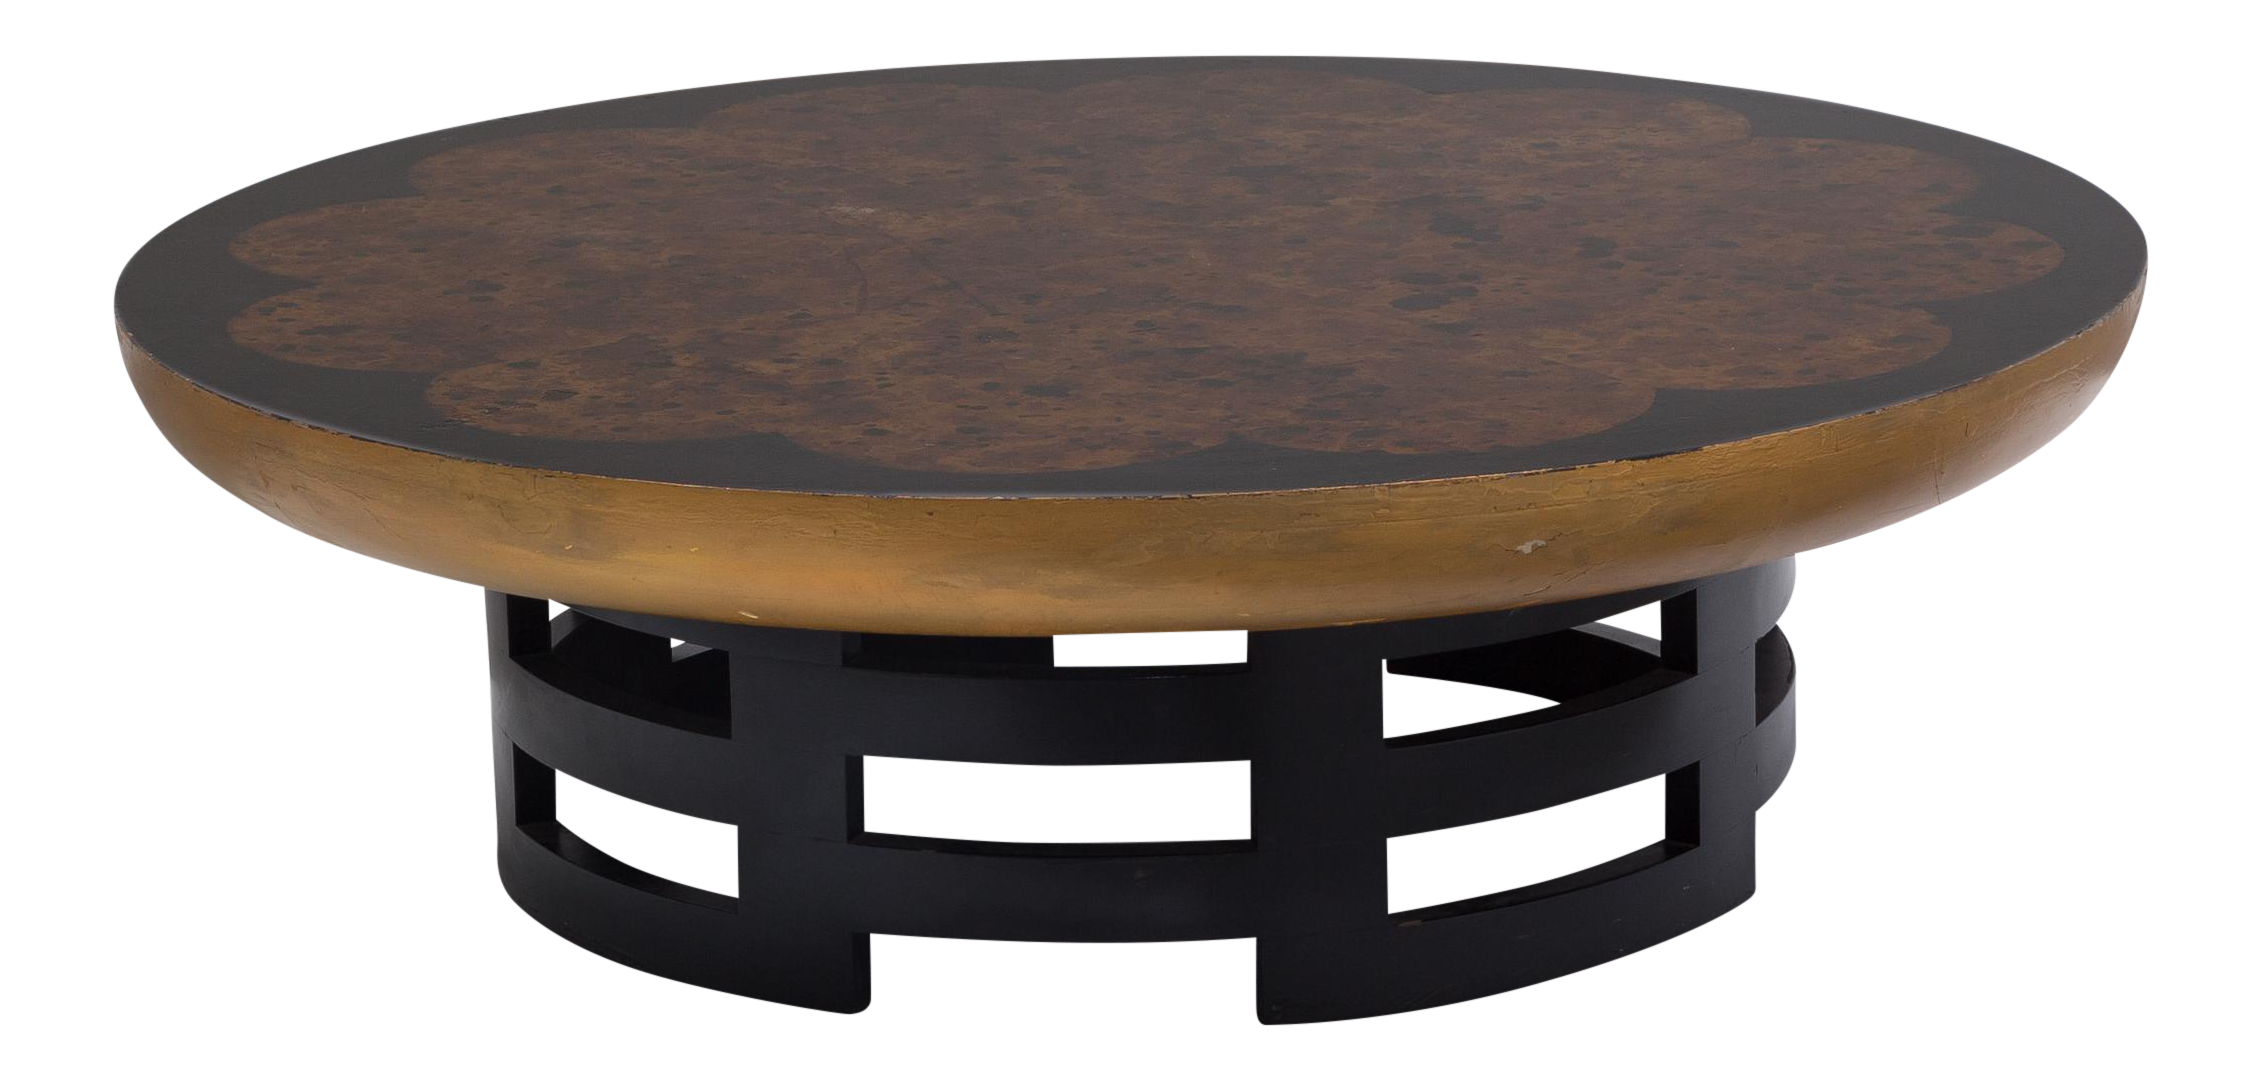 World Class A Kittinger Asian Modern Coffee Table Germany circa